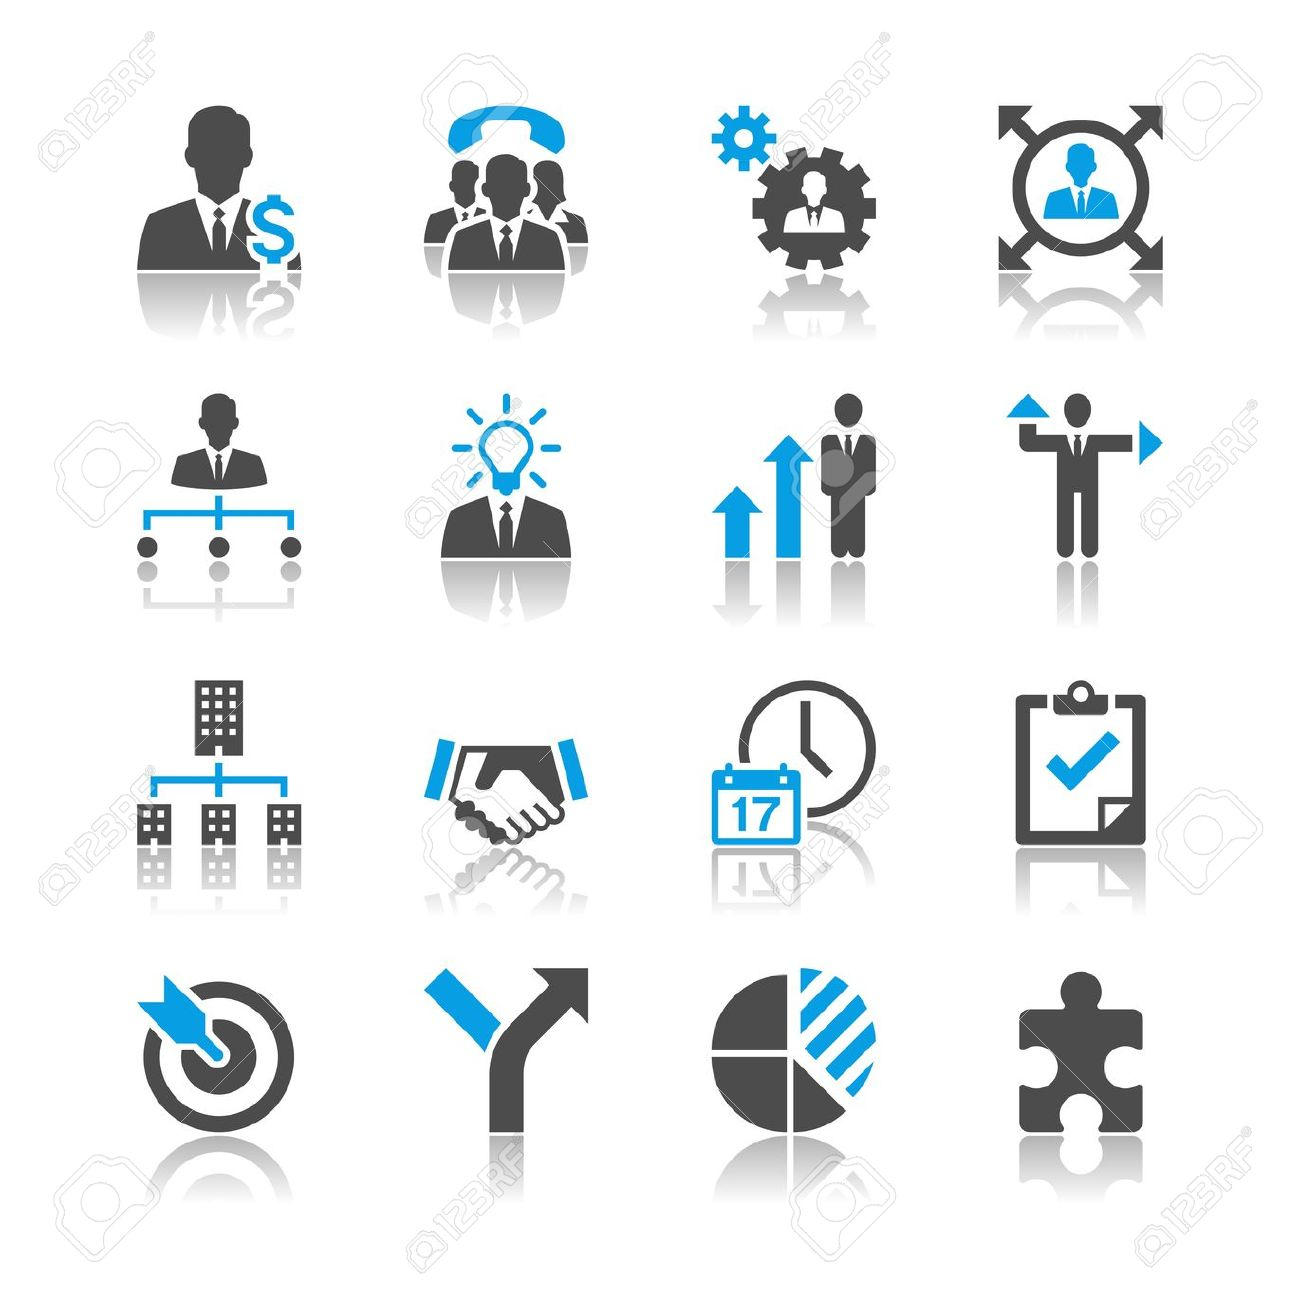 hight resolution of business sales multi task icon free clipart